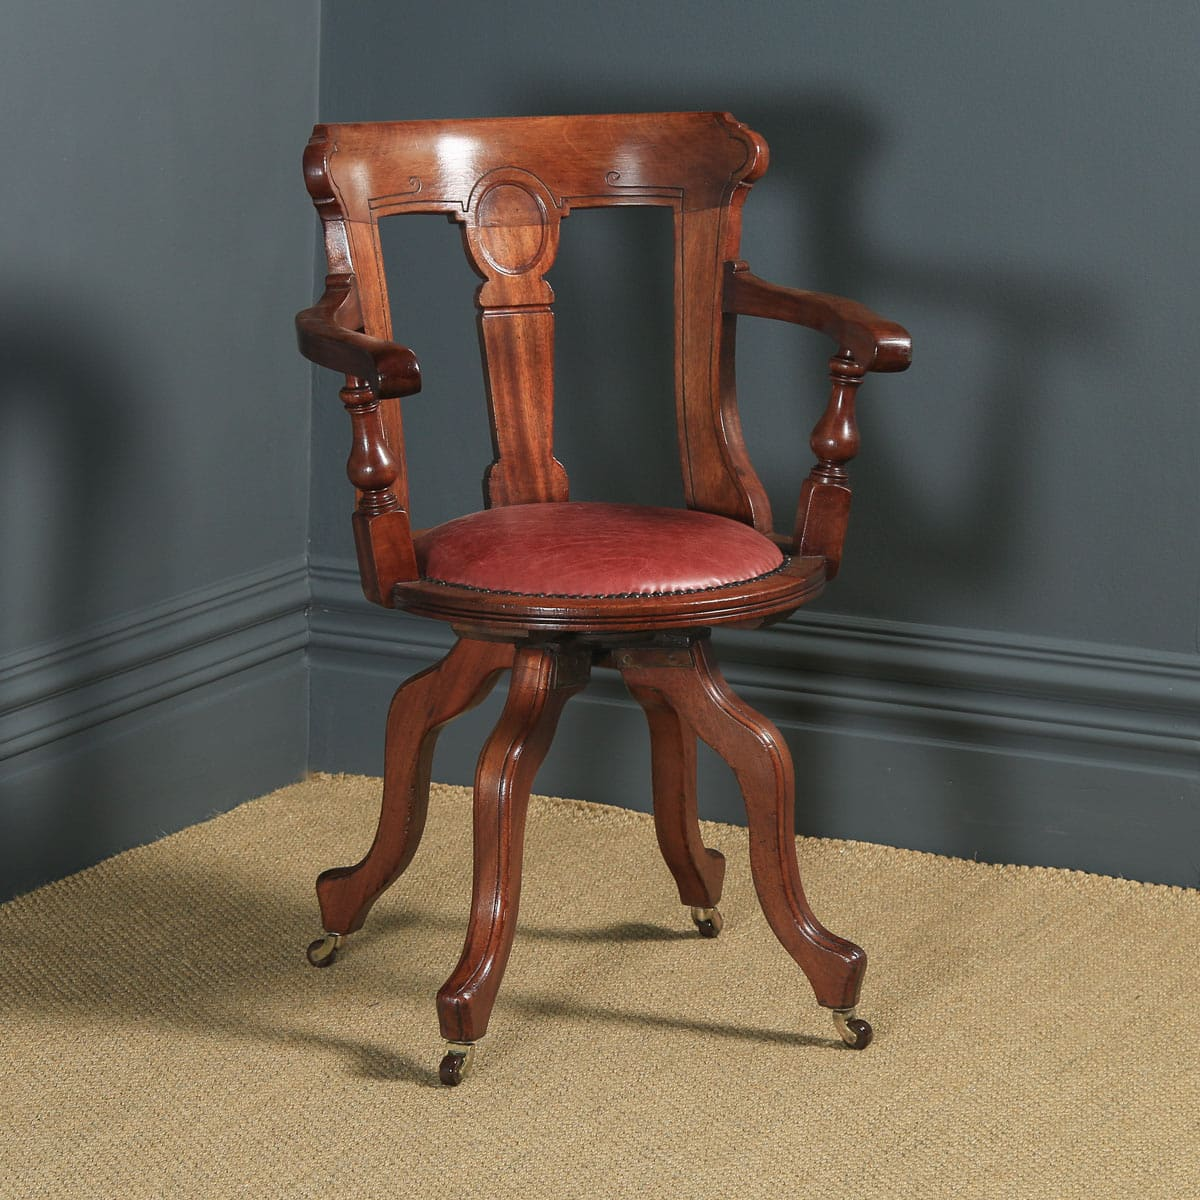 Swivel Desk Chair Walnut Leather English Victorian Yola Gray Antiques